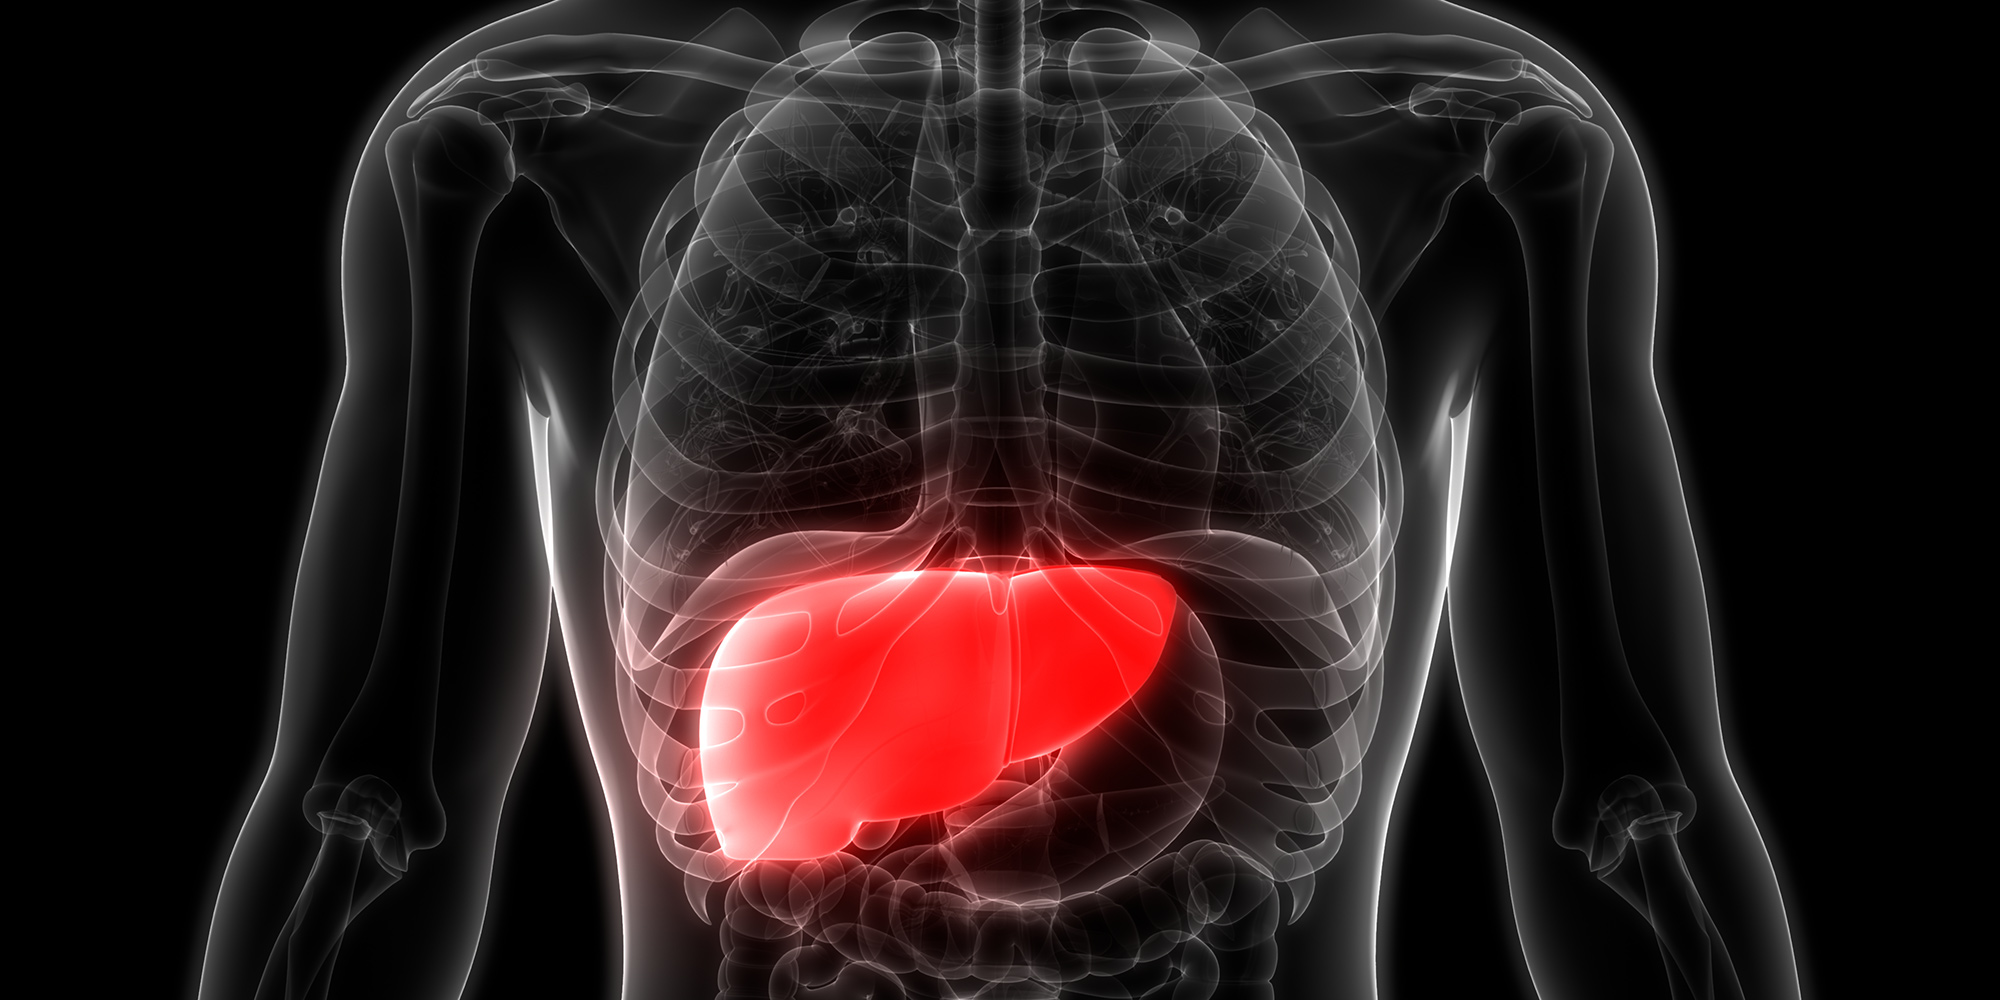 Research shows liver cancer proton therapy can help improve survival rate